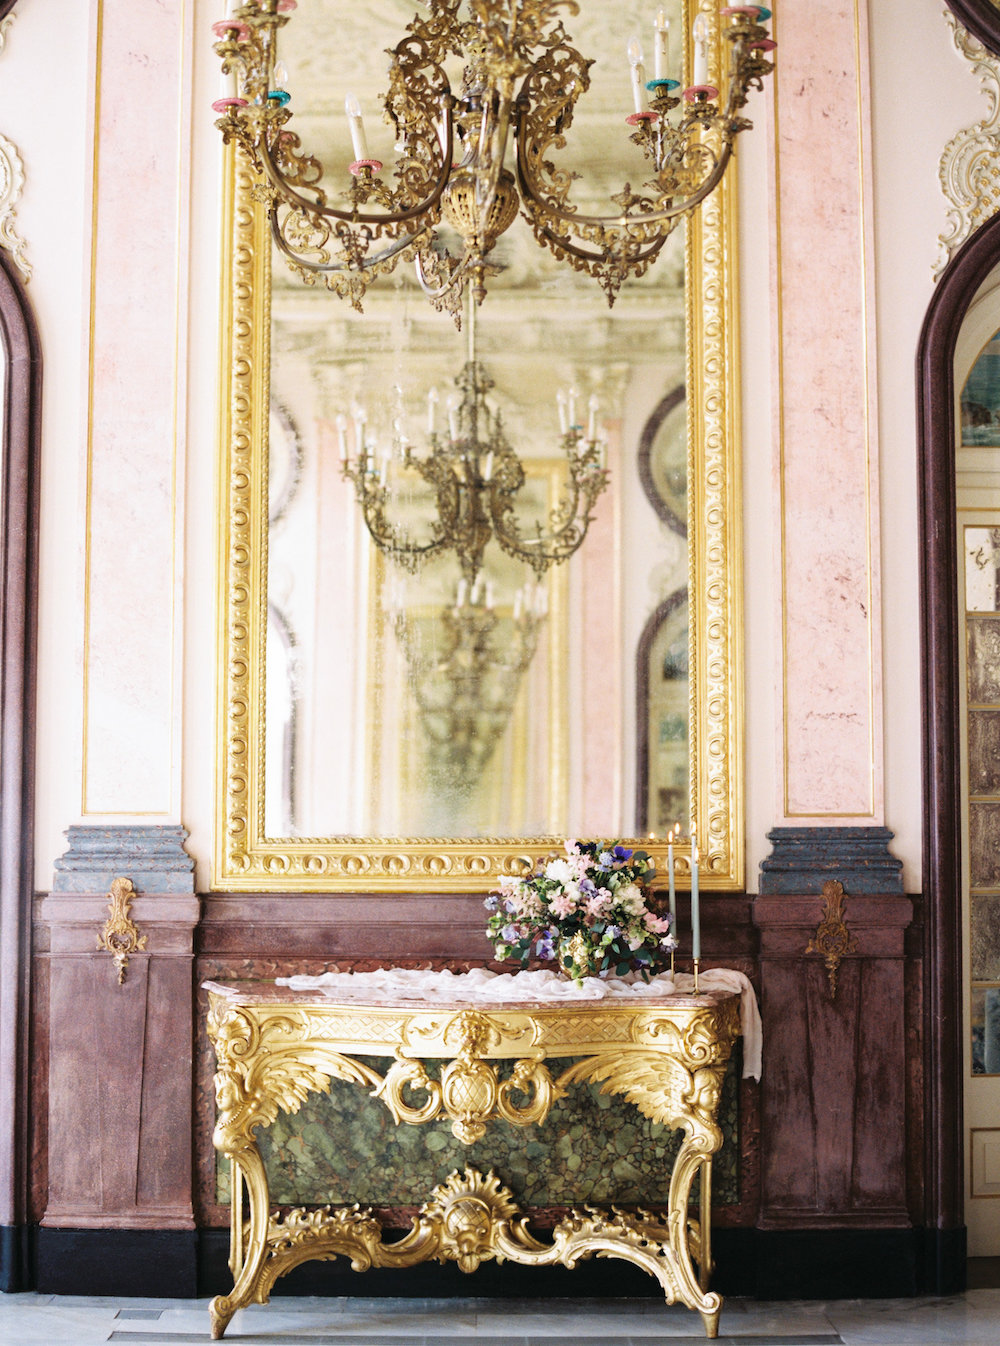 A Wedding Your Guests Will Always Remember - Gold interiors for a striking wedding venue in Portugal with the Estoi Palace